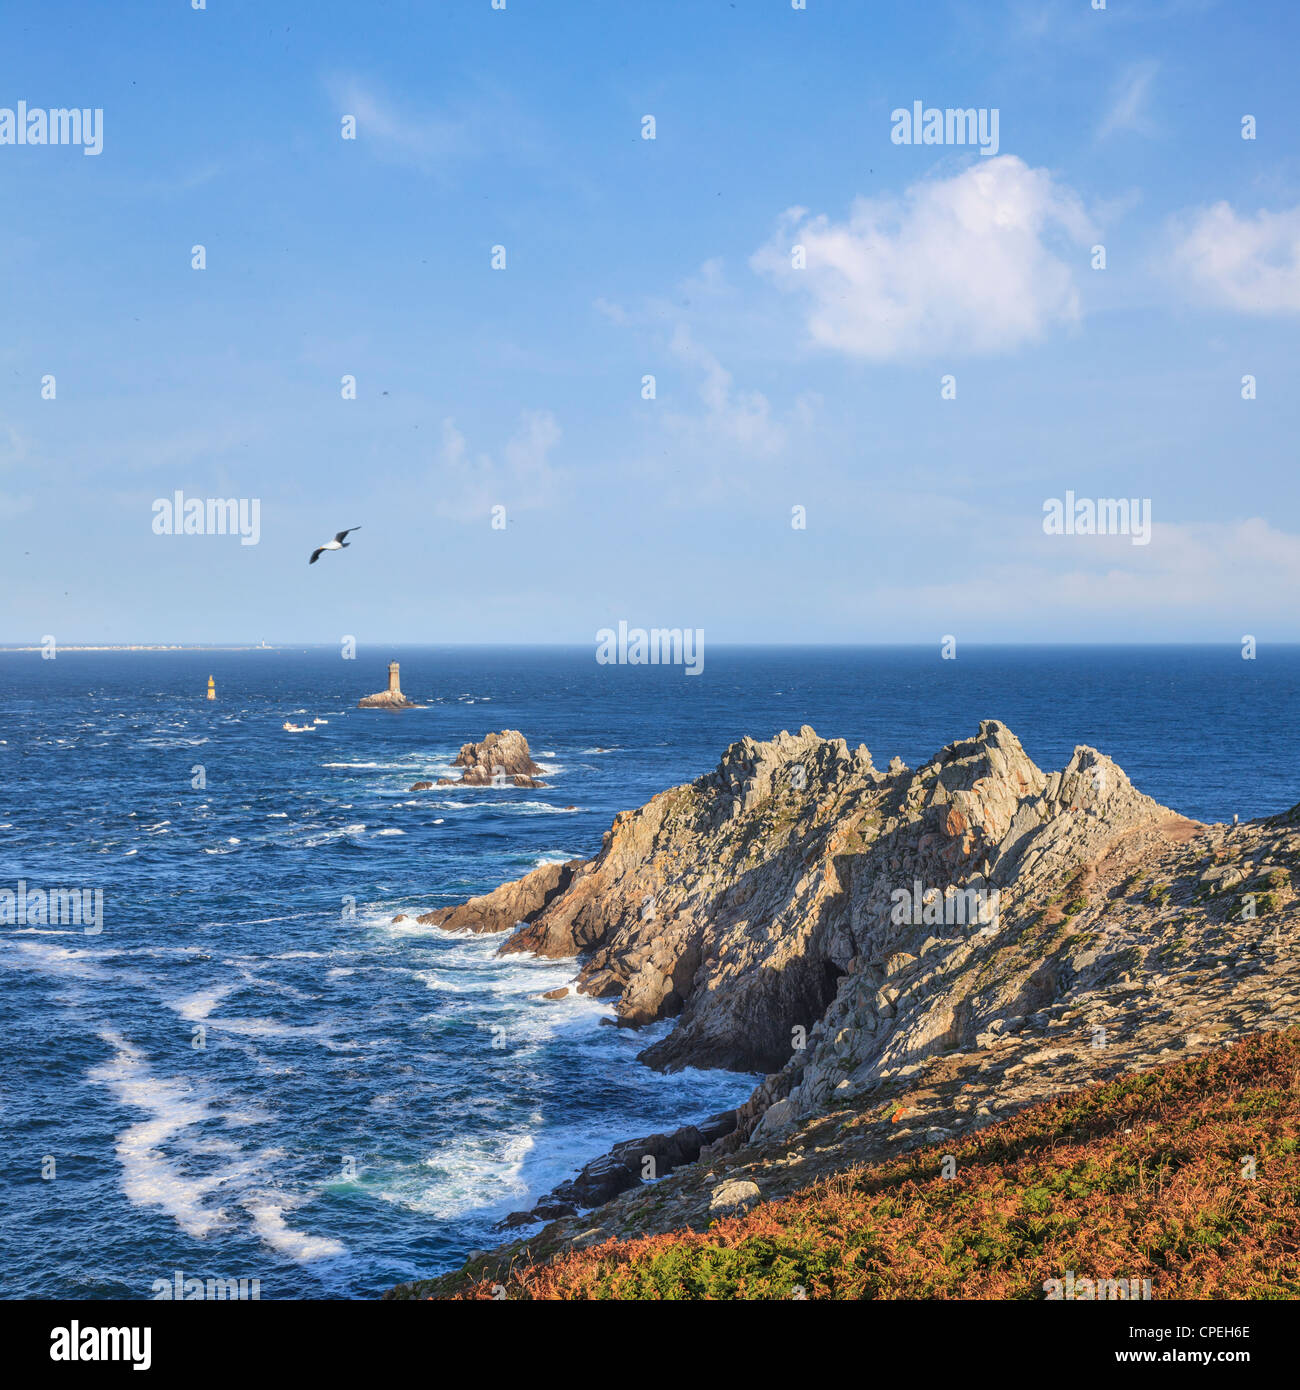 Pointe du Raz, one of Brittany's most dramatic landmarks, and the lighthouse La Vieille. - Stock Image